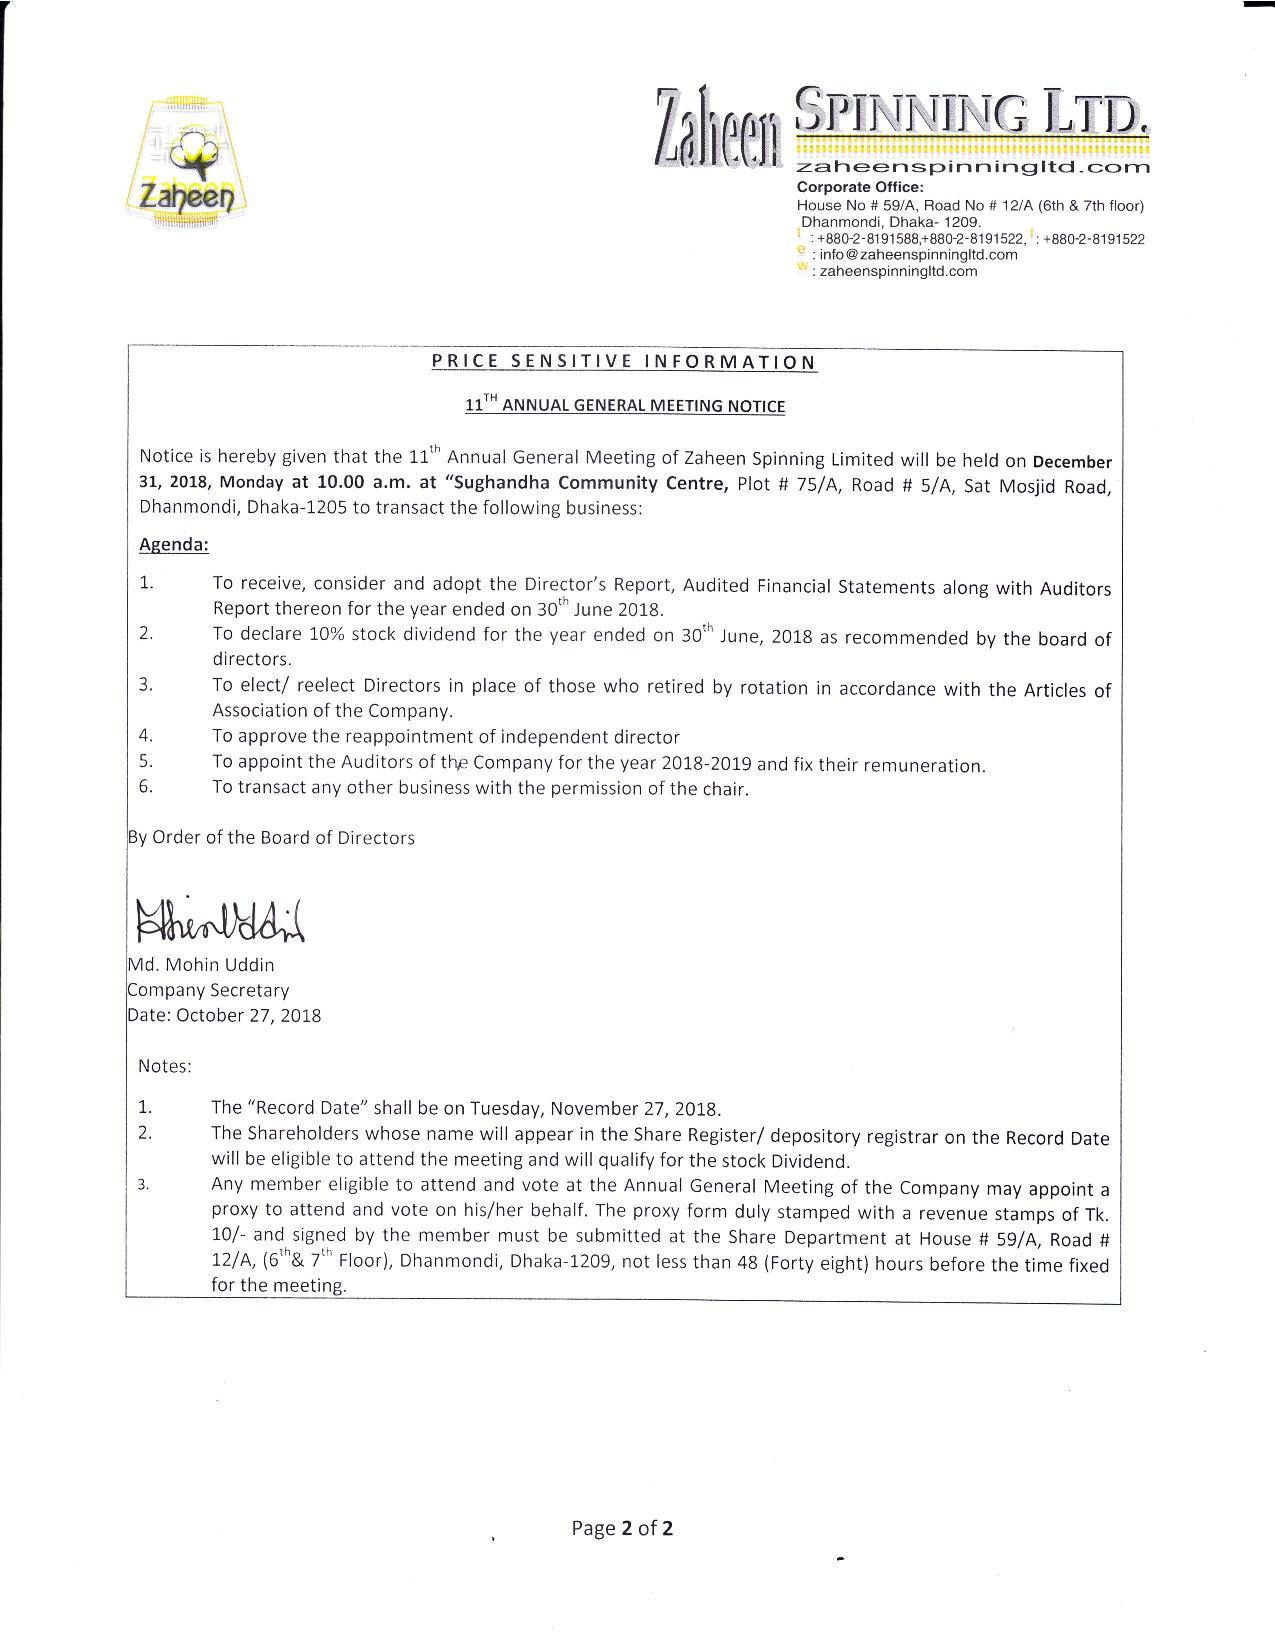 Price Sensitive information on AFS 27.10.2018-page-002